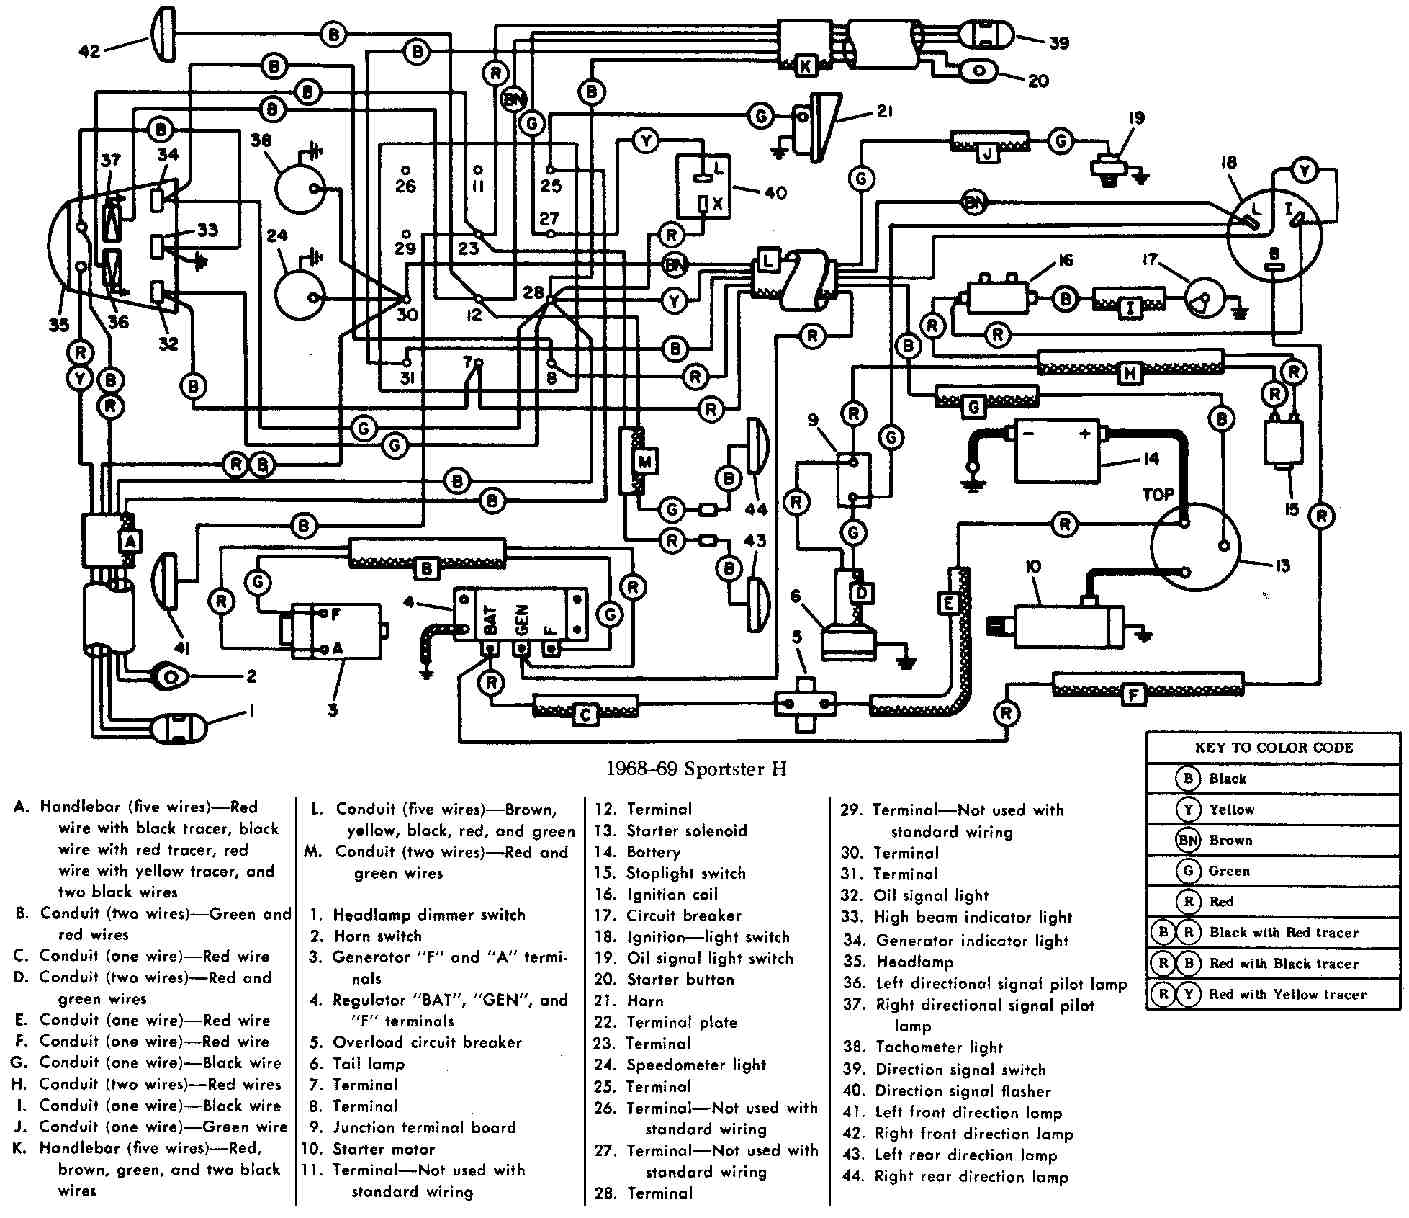 Hd Handlebars Wiring Diagram Auto Electrical 71 Bmw 2002 Ignition 3 Way Toggle Switch Variations 1993 Ford Explorer Engine Block X Ray Generator